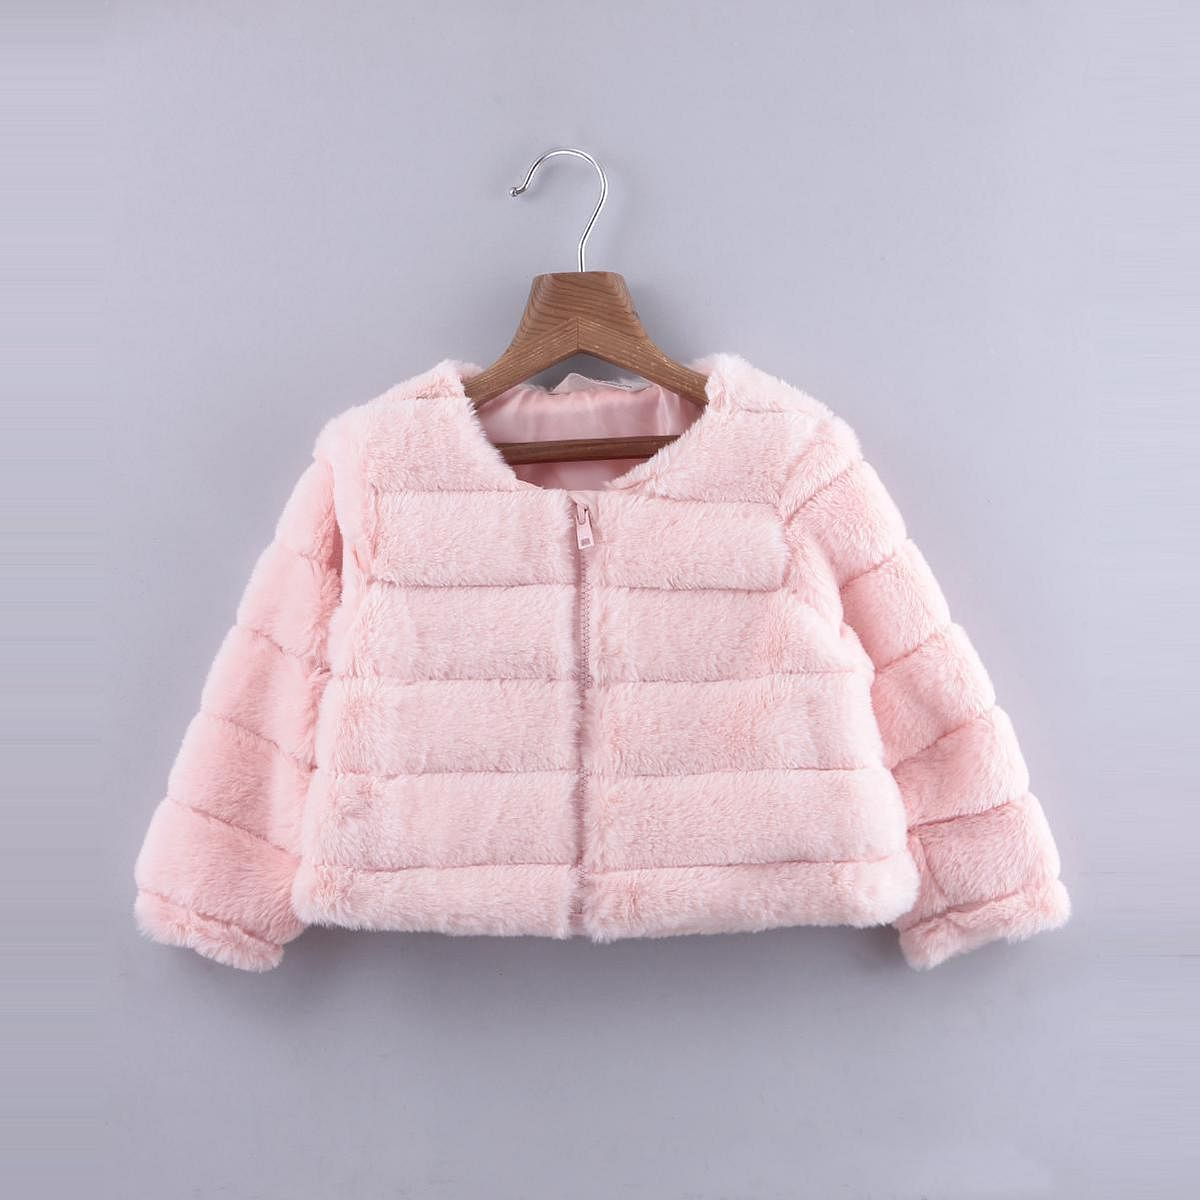 Beebay - Peach Colored Faux Fur Short Jacket For Infants Girls